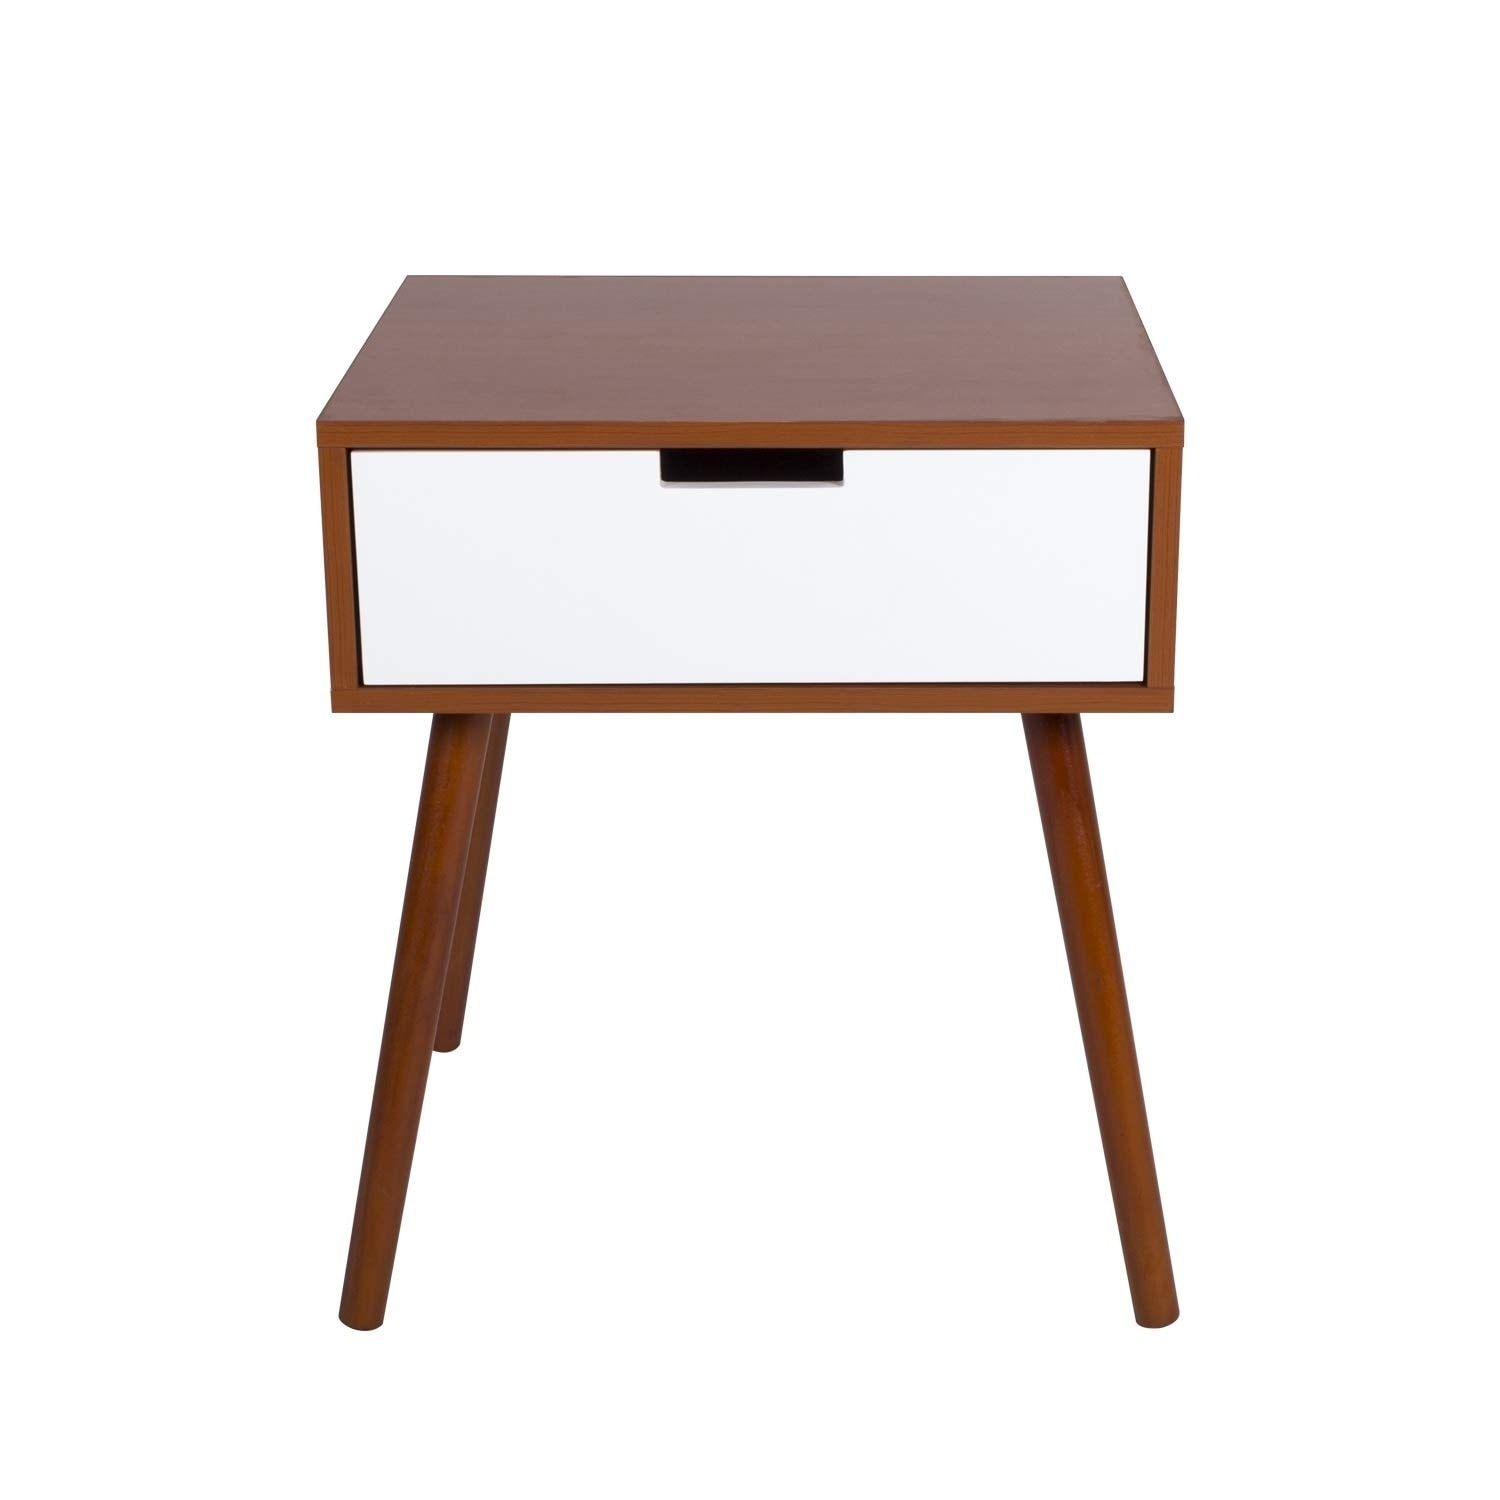 Kinbor Side End Table Mid Century Wood Nightstand Living Room Cabinet W Storage Drawer